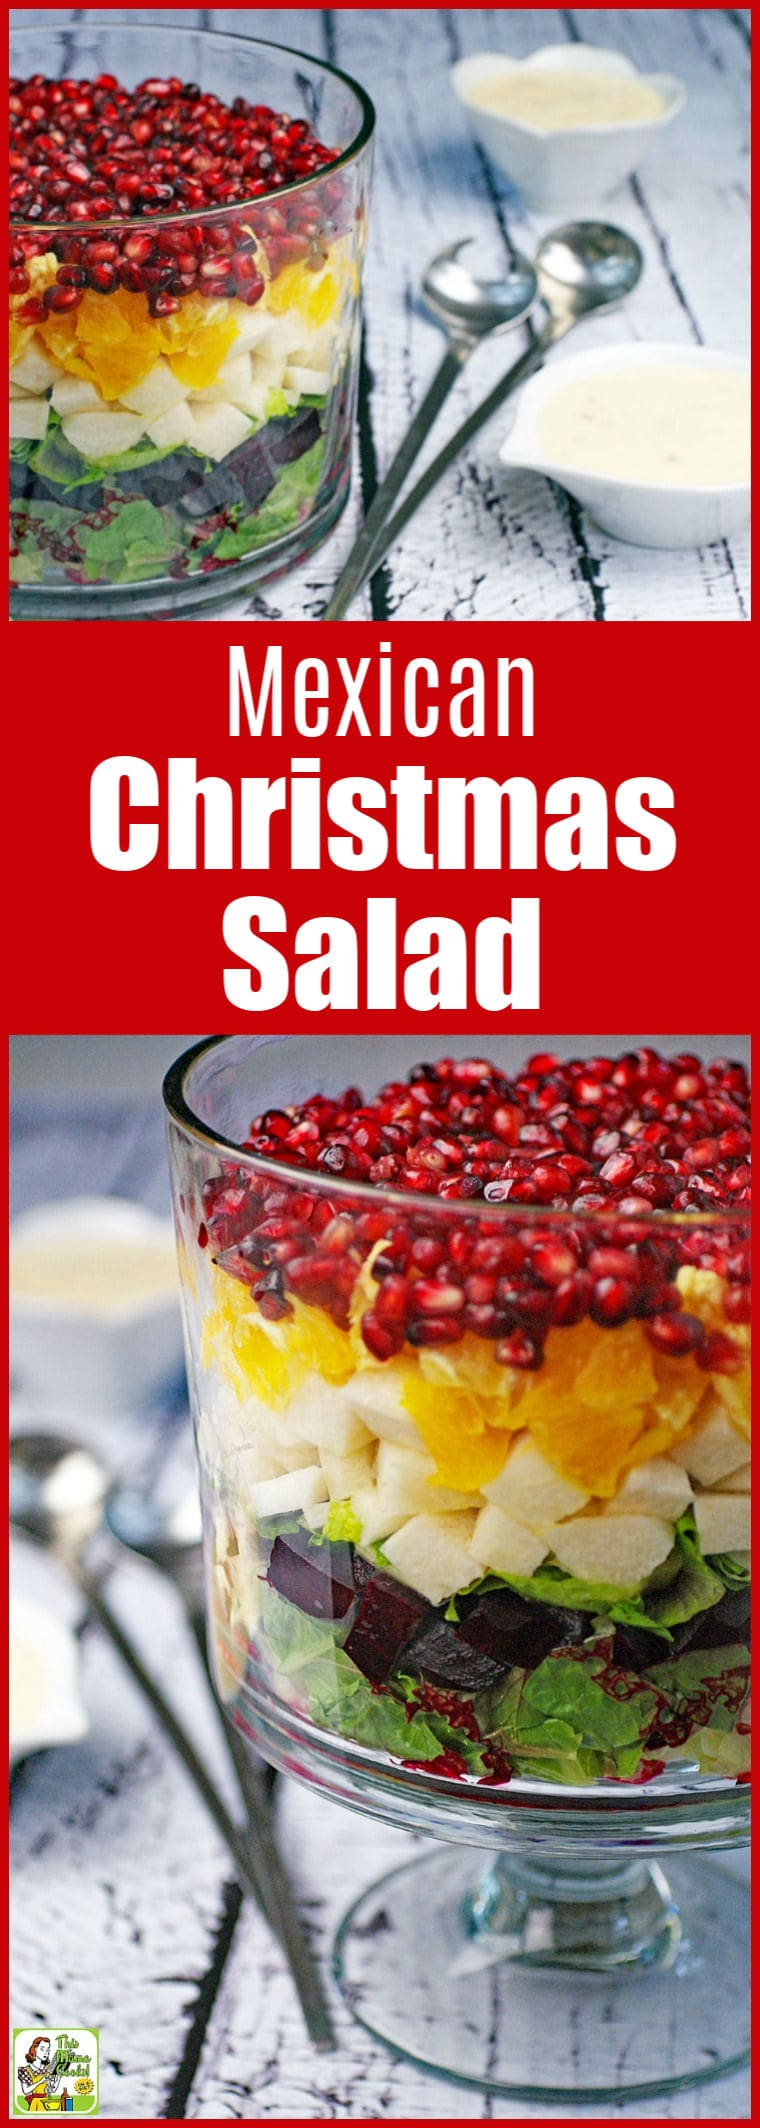 How to make a Mexican Christmas Salad Recipe